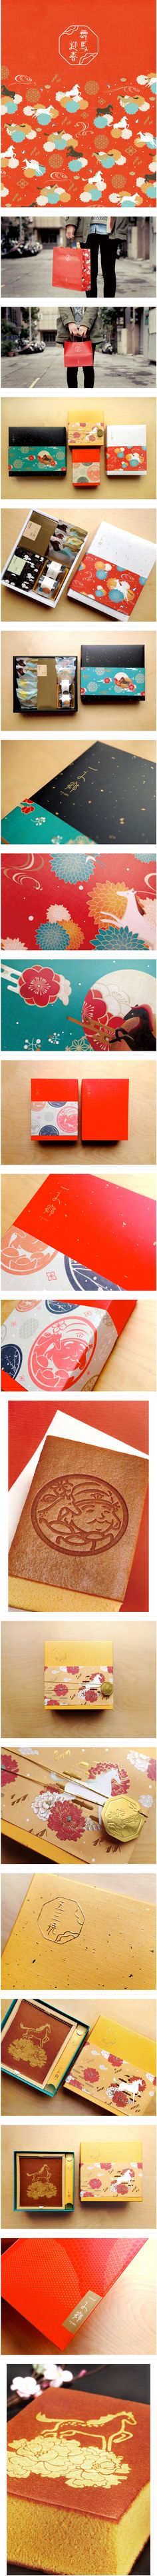 E-g-sain台湾一之乡品牌设计 非常... very pretty collection of packaging designs PD